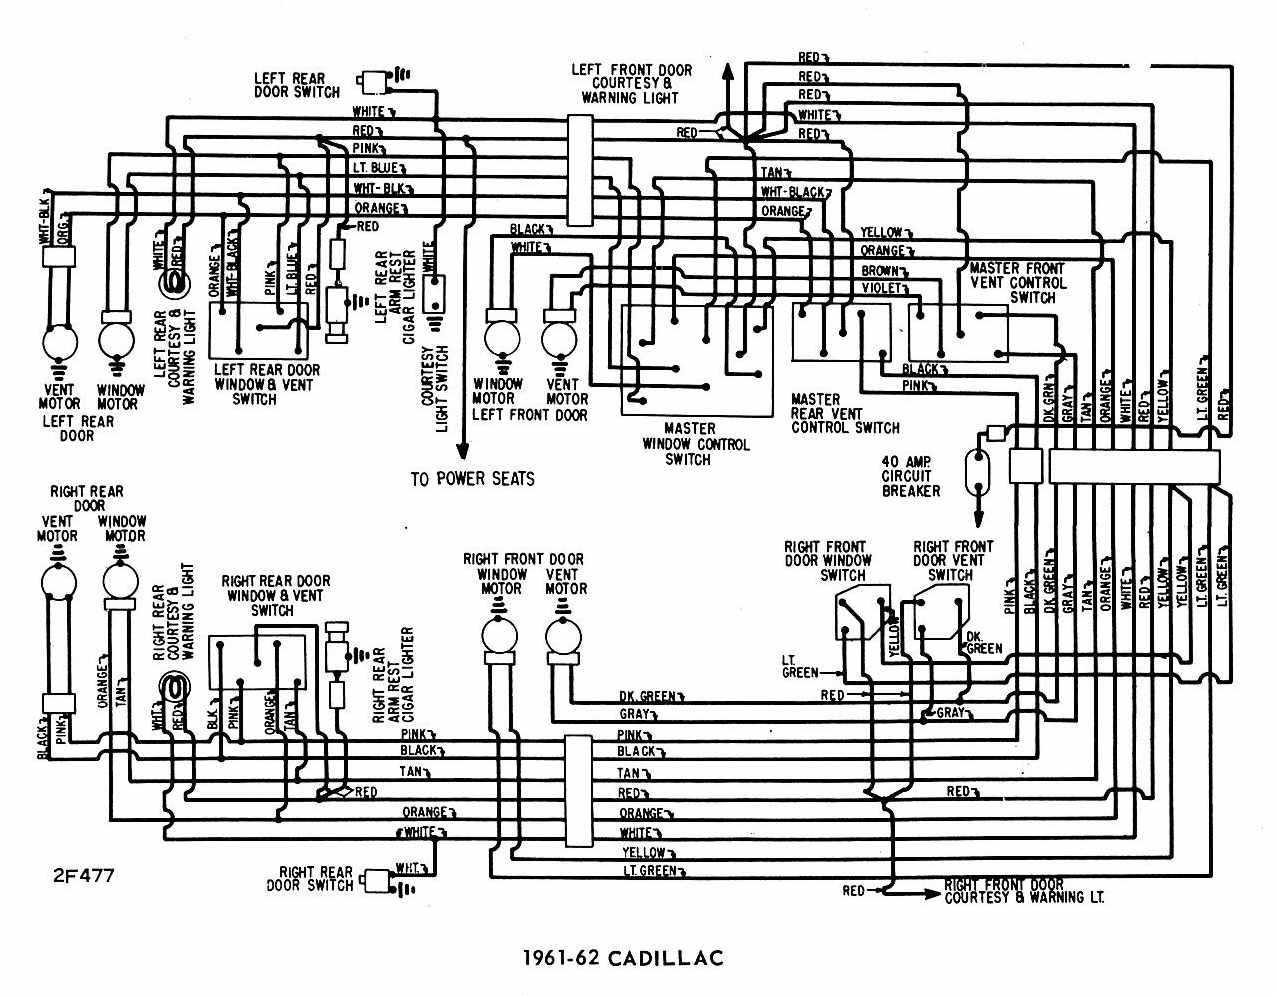 windows wiring diagram of 1961 62 cadillac?t\\\\\\\\\\\\\\\\\\\\\\\\\\\\\\\\\\\\\\\\\\\\\\\\\\\\\\\\\\\\\\\\\\\\\\\\\\\\\\\\\\\\\\\\\\\\\\\\\\\\\\\\\\\\\\\\\\\\\\\\\\\\\\\\\\\\\\\\\\\\\\\\\\\\\\\\\\\\\\\\\\\\\\\\\\\\\\\\\\\\\\\\\\\\\\\\\\\\\\\\\\\\\\\\\\\\\\\\\\\\\\\\\\\\\\\\\\\\\\\\\\\\\\\\\\\\\\\\\\\\\\\\\\\\\\\\\\\\\\\\\\\\\\\\\\\\\\\\\\\\\\\\\\\\\\\\\\\\\\\\\\\\\\\\\\\\\\\\\\\\\\\\\\\\\\\\\\\\\\\\\\\\\\\\\\\\\\\\\\\\\\\\\\\\\\\\\\\\\\\\\\\\\\\\\\\\\\\\\\\\\\\\\\\\\\\\\\\\\\\\\\\\\\\\\\\\\\\\\\\\\\\\\\\\\\\\\\\\\\\\\\\\\\\\\\\\\\\\\\\\\\\\\\\\\\\\\\\\\\\\\\\\\\\\\\\\\\\\\\\\\\\\\\\\\\\\\\\\\\\\\\\\\\\\\\\\\\\\\\\\\\\\\\\\\\\\\\\\\\\\\\\\\\\\\\\\\\\\\\\\\\\\\\\\\\\\\\\\\\\\\\\\\\\\\\\\\\\\\\\\\\\\\\\\\\\\\\\\\\\\\\\\\\\\\\\\\\\\\\\\\\\\\\\\\\\\\\\\\\\\\\\\\\\\\\\\\\\\\\\\\\\\\\\\\\\\\\\\\\\\\\\\\\\\\\\\\\\\\\\\\\\\\\\\\\\\\\\\\\\\\\\\\\\\\\\\\\\\\\\\\\\\\\\\\\\\\\\\\\\\\\\\\\\\\\\\\\\\\\\\\\\\\\\\\\\\\\\\\\\\\\\\\\\\\\\\\\\\\\\\\\\\\\\\\\\\\\\\\\\\\\\\\\\\\\\\\\\\\\\\\\\\\\\\\\\\\\\\\\\\\\\\\\\\\\\\\\\\\\\\\\\\\\\\\\\\\\\\\\\\\\\\\\\\\\\\\\\\\\\\\\\\\\\\\\\\\\\\\\\\\\\\\\\\\\\\\\\\\\\\\\\\\\\\\\\\\\\\\\\\\\\\\\\\\\\\\\\\\\\\\\\\\\\\\\\\\\\\\\\\\\\\\\\\\\\\\\\\\\\\\\\\\\\\\\\\\\\\\\\\\\\\\\\\\\\\\\\\\\\\\\\\\\\\\\\\\\\\\\\\\\\\\\\\\\\\\\\\\\\\\\\\\\\\\\\\\\\\\\\\\\\\\\\\\\\\\\\\\\\\\\\\\\\\\\\\\\\\\\\\\\\\\\\\\\\\\\\\\\\\\\\\\\\\\\\\\\\\\\\\\\\\\\\\\\\\\\\\\\\\\\\\\\\\\\\\\\\\\\\\\\\\\\\\\\\\\\\\\\\\\\\\\\\\\\\\\\\\\\\\\\\\\\\\\\\\\\\\\\\\\\\\\\\\\\\\\\\\\\\\\\\\\\\\\\\\\\\\\\\\\\\\\\\\\\\\\\\\\\\\\\\\\\\\\\\\\\\\\\\\\\\\\\\\\\\\\\\\\\\\\\\\\\\\\\\\\\\\\\\\\\\\\\\\\\\\\\\\\\\\\\\\\\\\\\\\\\\\\\\\\\\\\\\\\\\\\\\\\\\\\\\\\\\\\\\\\\\\\\\\\\\\\\\\\\\\\\\\\\\\\\\\\\\\\\\\\\\\\\\\\\\\\\\\\\\\\\\\\\\\\\\\\\\\\\\\\\\\\\\\\\\\\\\\\\\\\\\\\\\\\\\\\\\\\\\\\\\\\\\\\\\\\\\\\\\\\\\\\\\\\\\\\\\\\\\\\\\\\\\\\\\\\\\\\\\\\\\\\\\\\\\\\\\\\\\\\\\\\\\\\\\\\\\\\\\\\\\\\\\\\\\\\\\\\\\\\\\\\\\\\\\\\\\\\\\\\\\\\\\\\\\\\\\\\\\\\\\\\\\\\\\\\\\\\\\\\\\\\\\\\\\\\\\\\\\\\\\\\\\\\\\\\\\\\\\\\\\\\\\\\\\\\\\\\\\\\\\\\\\\\\\\\\\\\\\\\\\\\\\\\\\\\\\\\\\\\\\\\\\\\\\\\\\\\\\\\\\\\\\\\\\\\\\=1508149295 68 cadillac wiring diagram free picture schematic schematic diagram